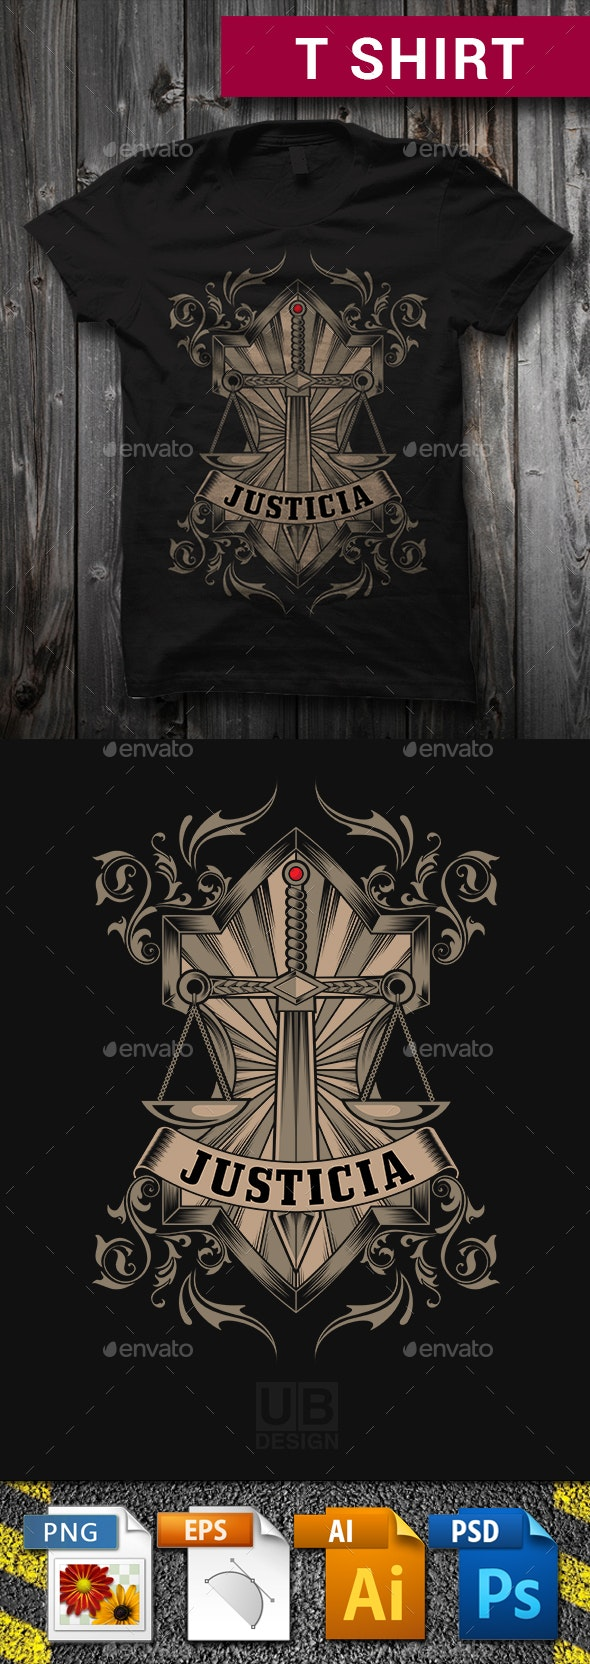 Justicia T-Shirt Graphic Design - Business T-Shirts